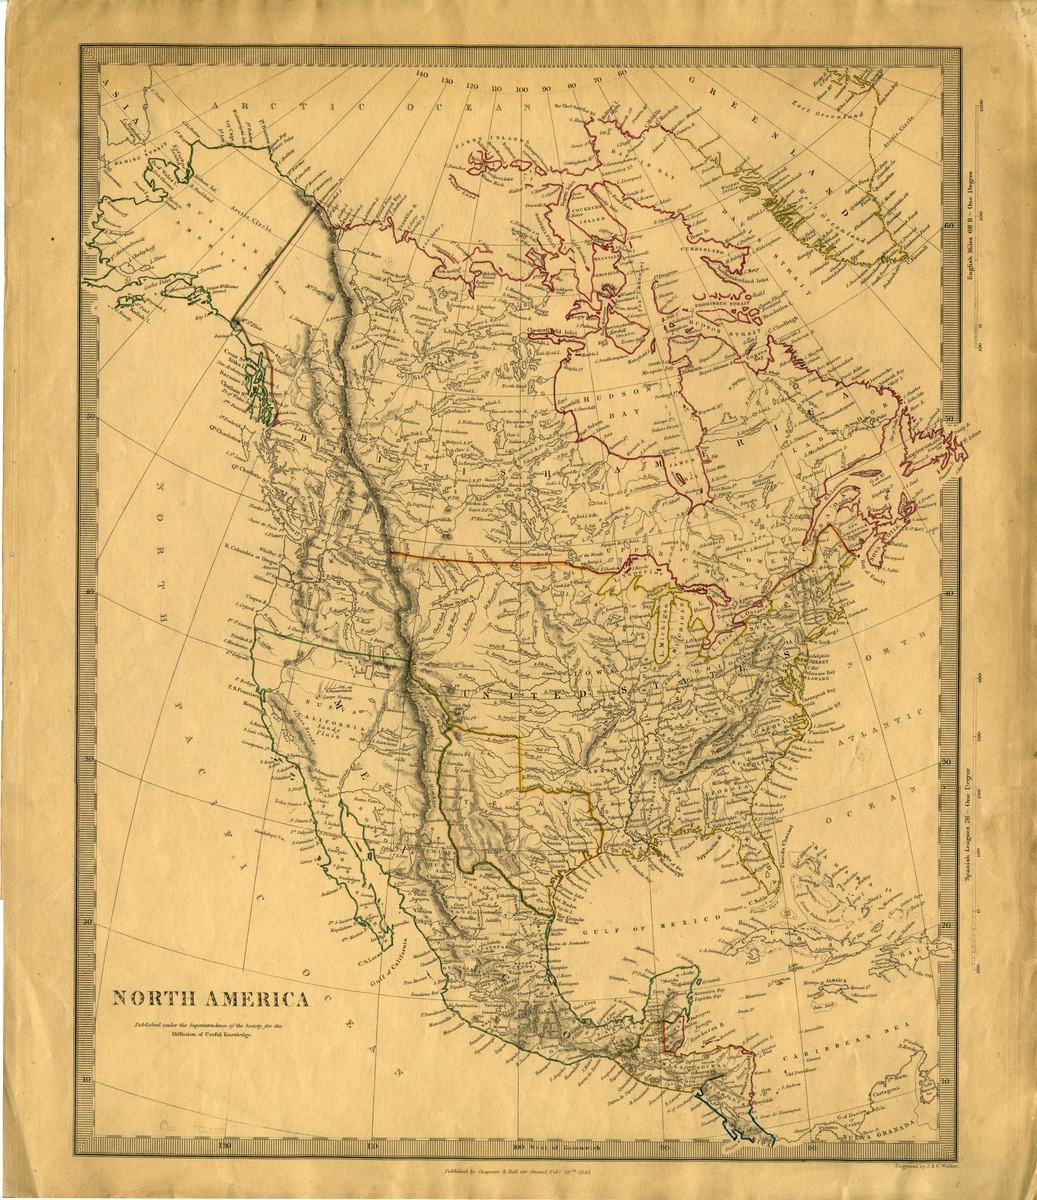 North America, published under the superintendence of the Society for the Diffusion of Useful Knowledge